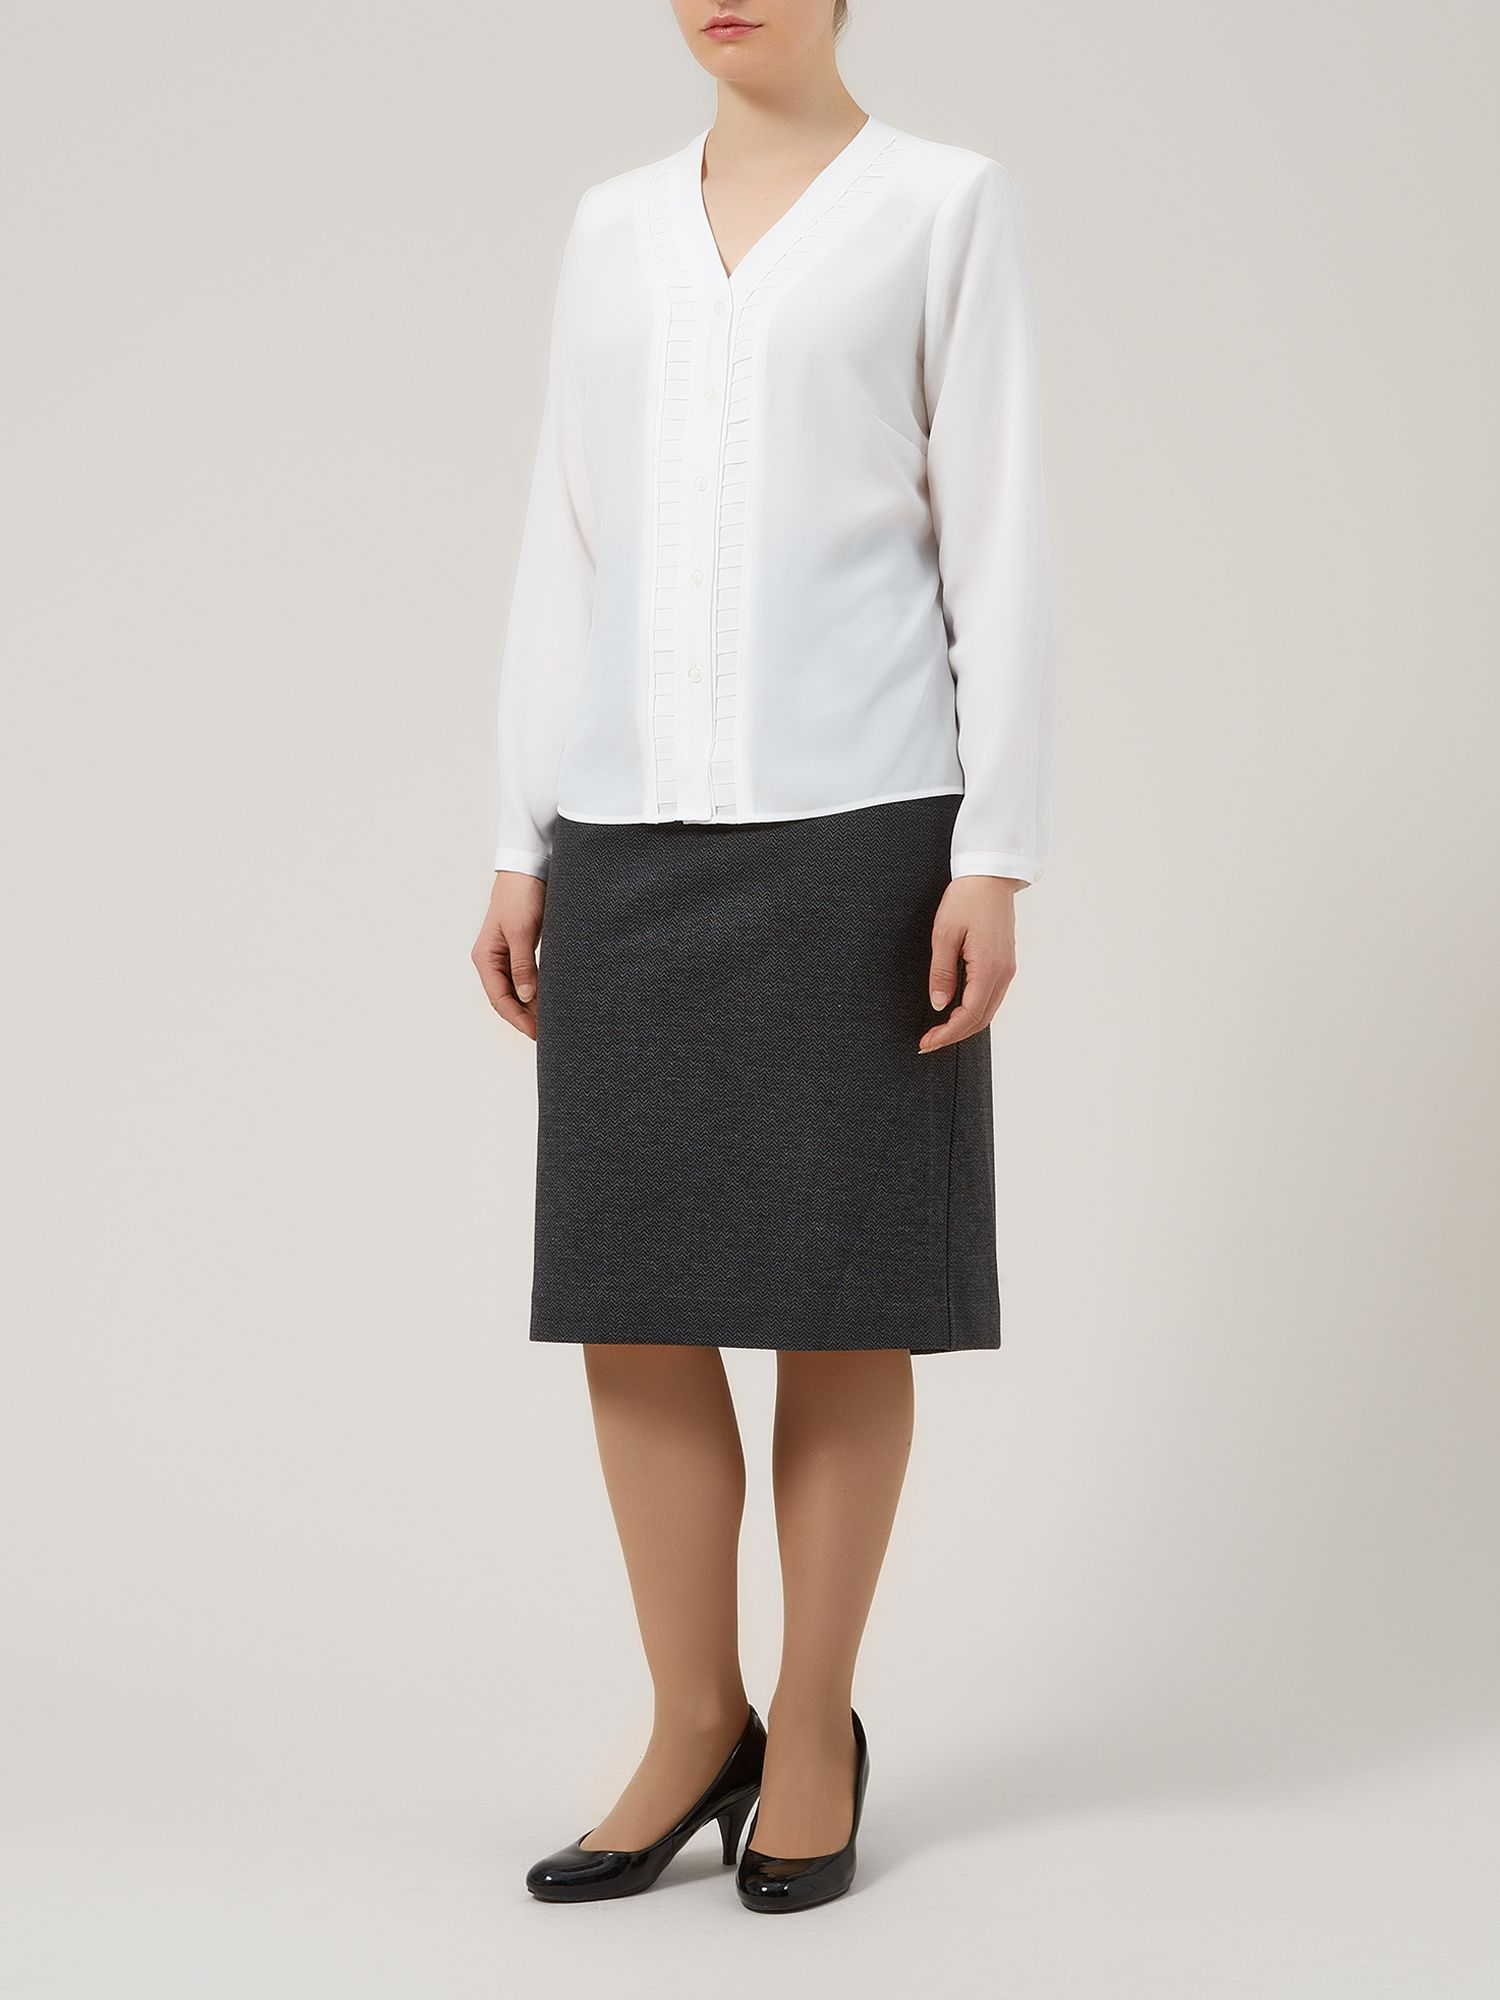 Chevron ponti pencil skirt